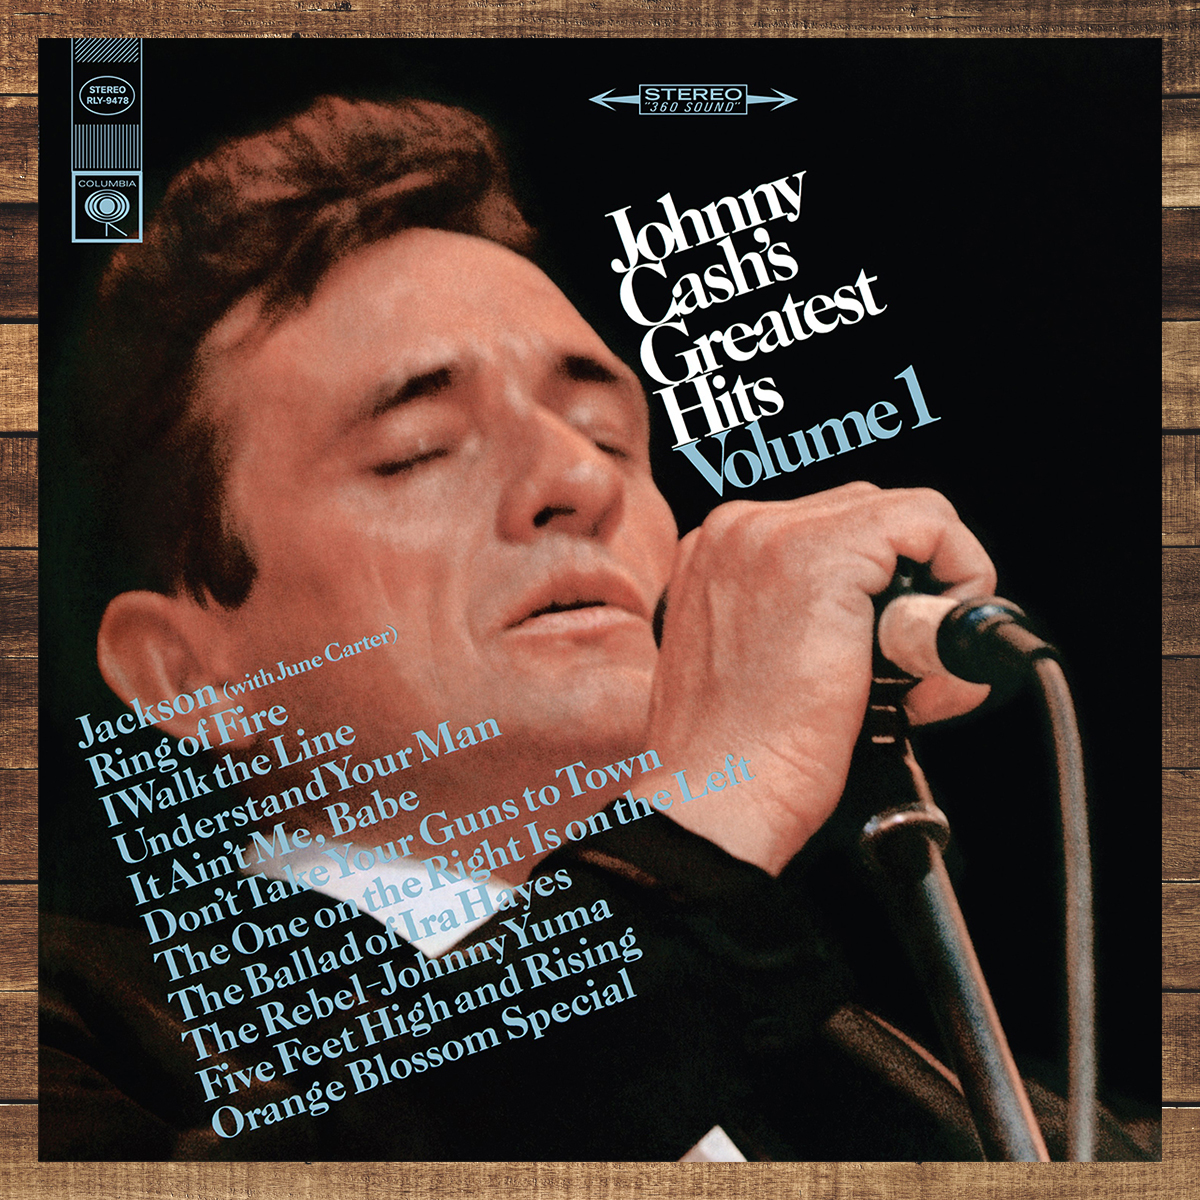 Johnny Cash's Greatest Hits Volume I Vinyl